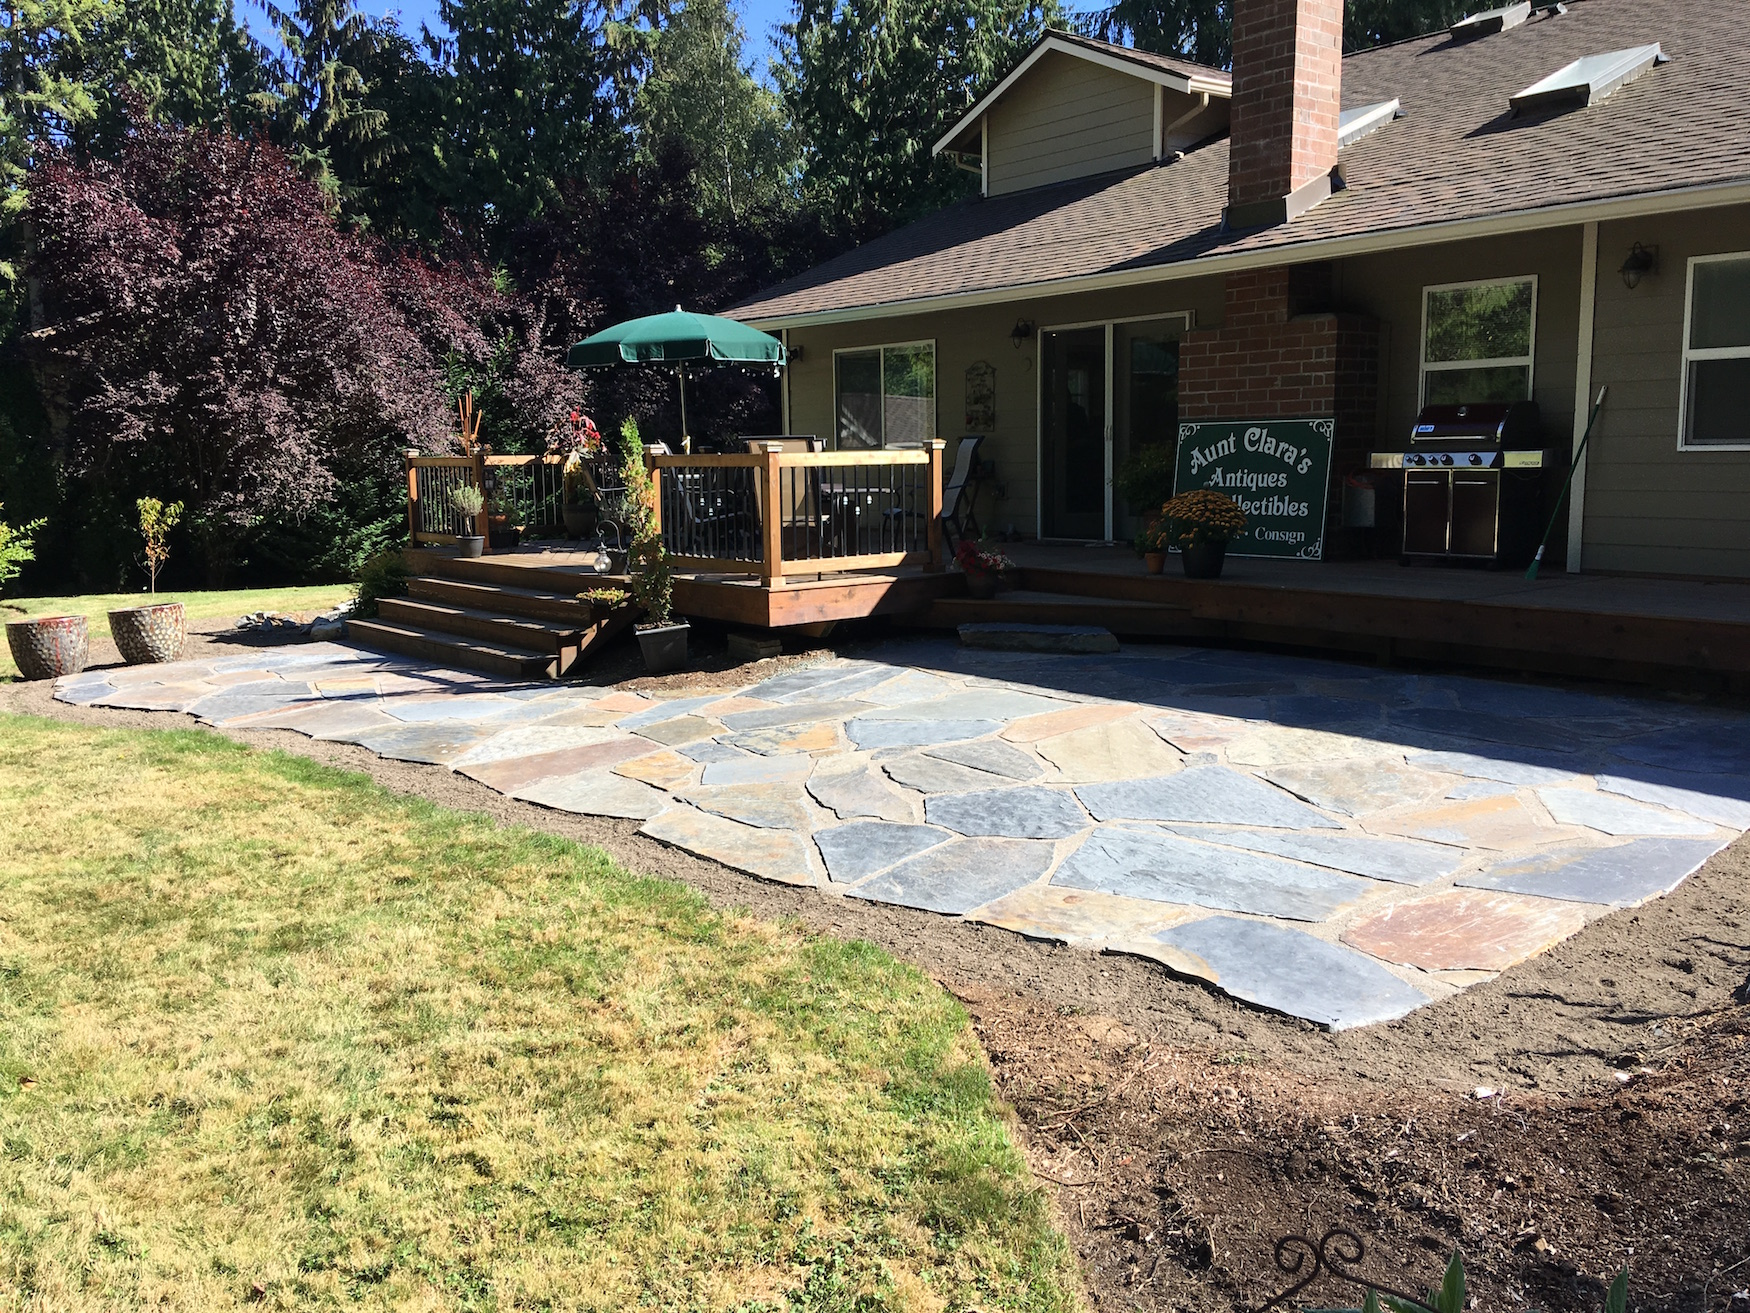 Gravel Set Iron Mountain Flagstone Patio. Gray Polymeric Sand In Joints.  Polymeric Sand Is An Excellent Choice For Sand/gravel Set Flagstone  Applications ...